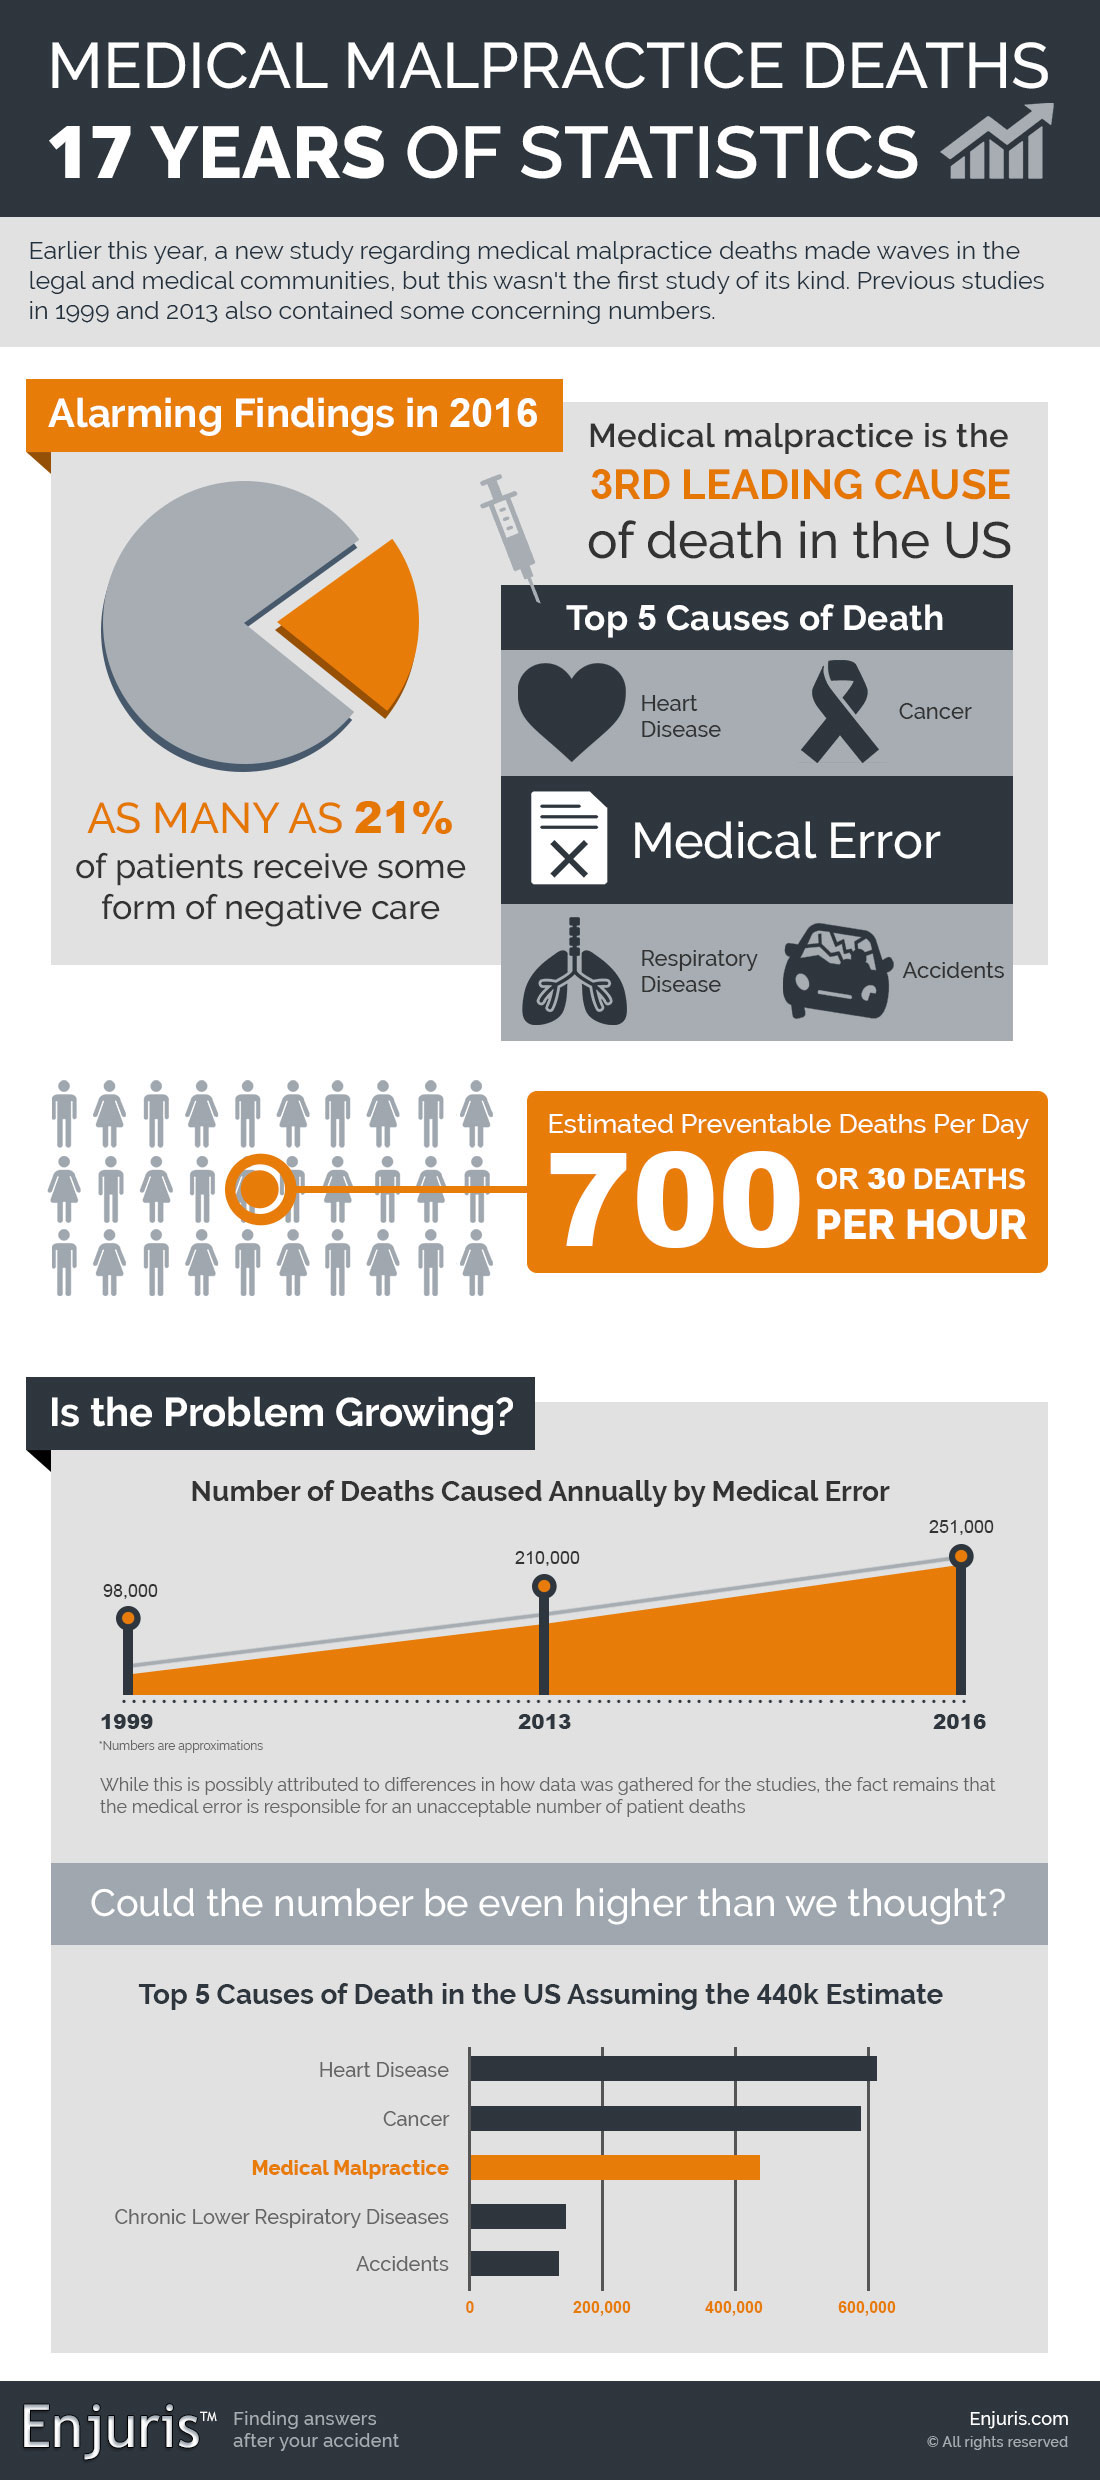 Medical Malpractice Deaths - 17 Years of Statistics